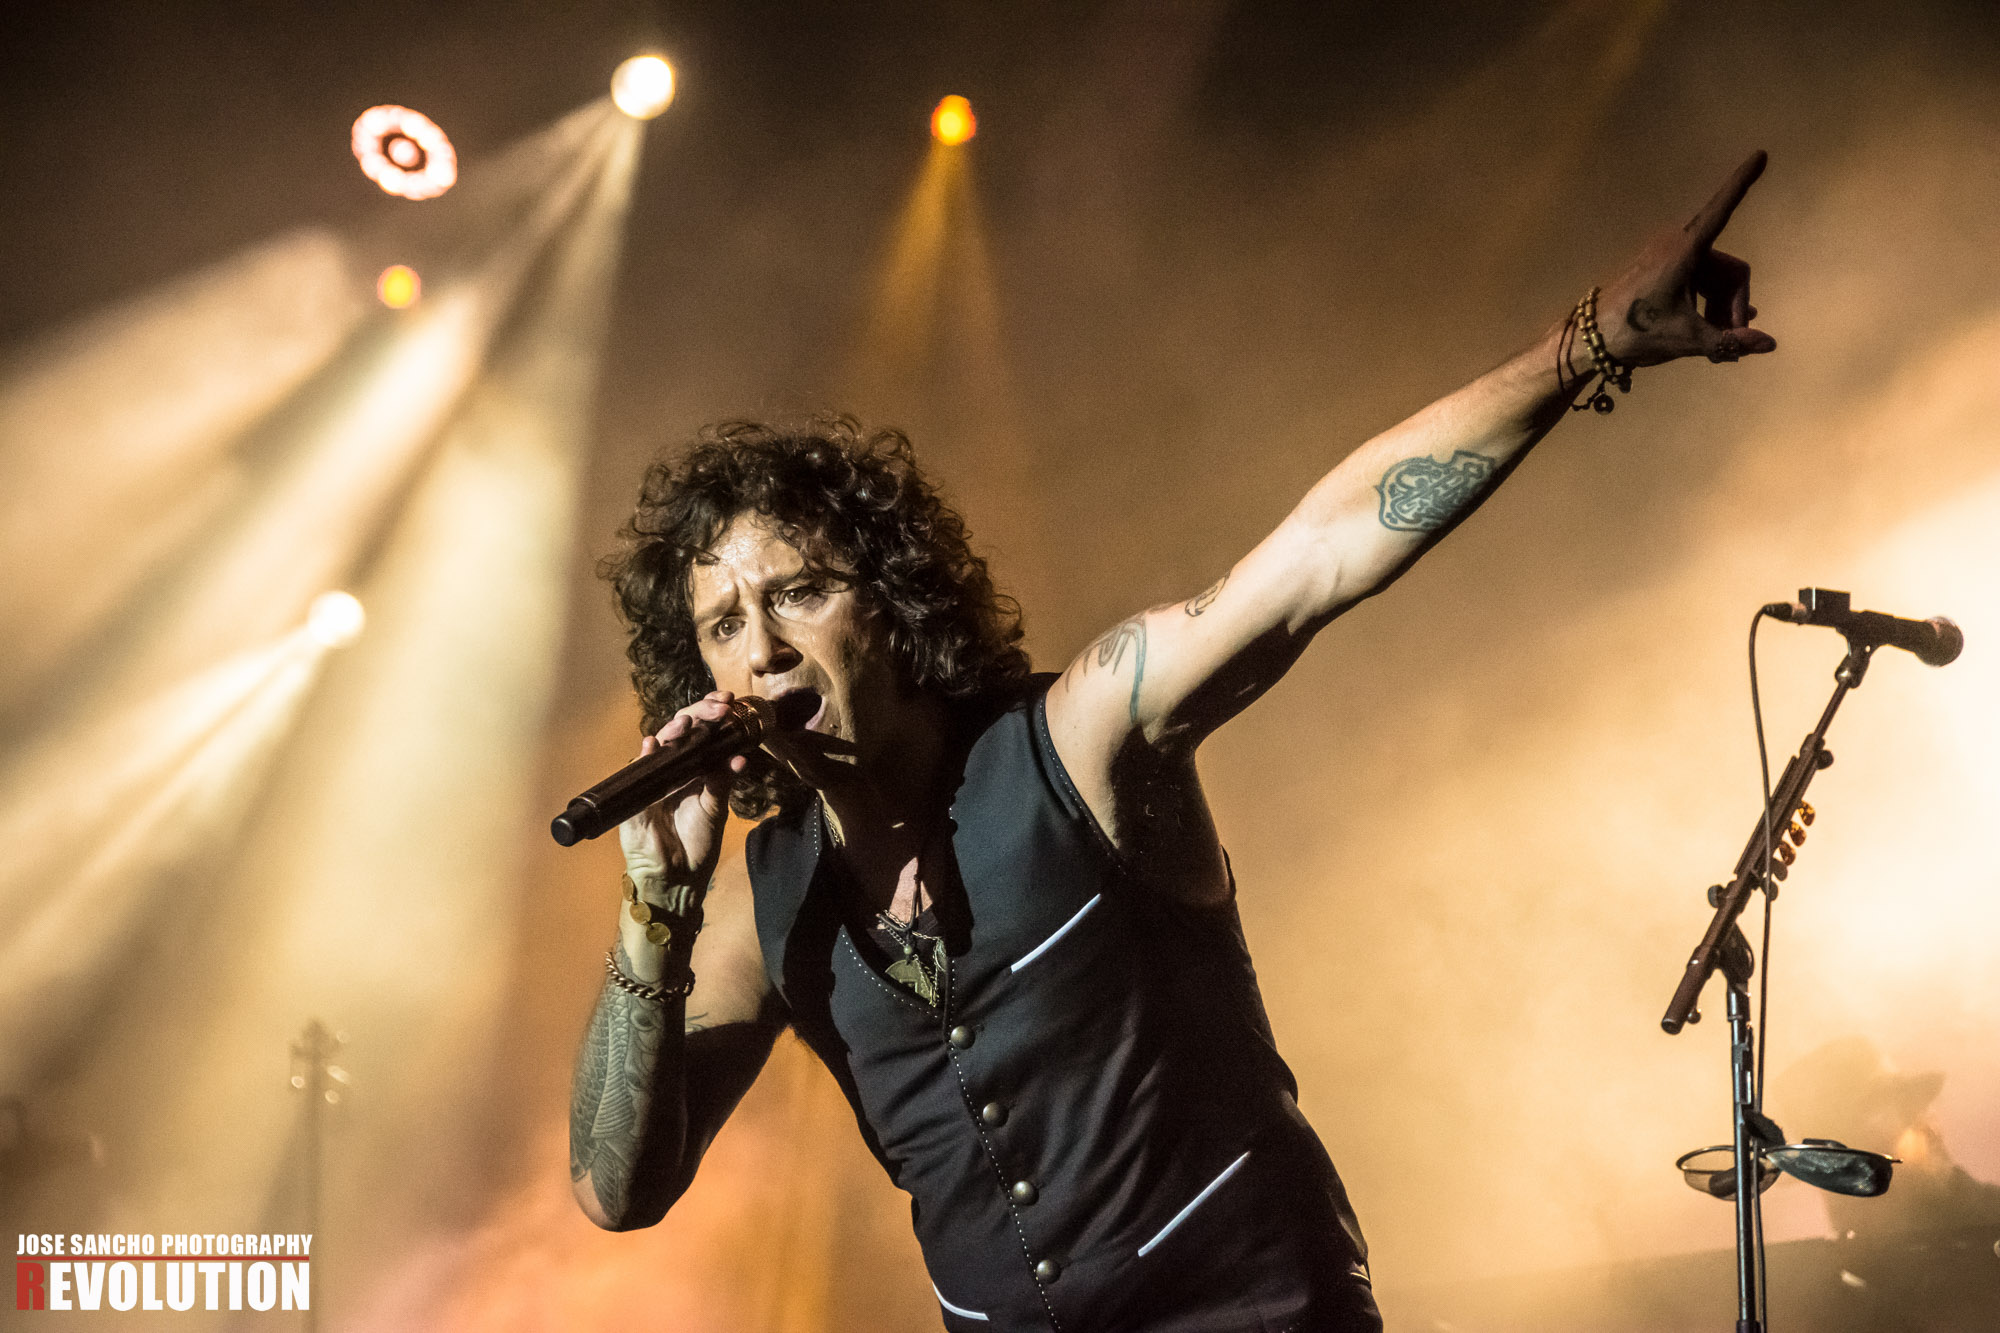 Enrique Bunbury - Jose Sancho Photography